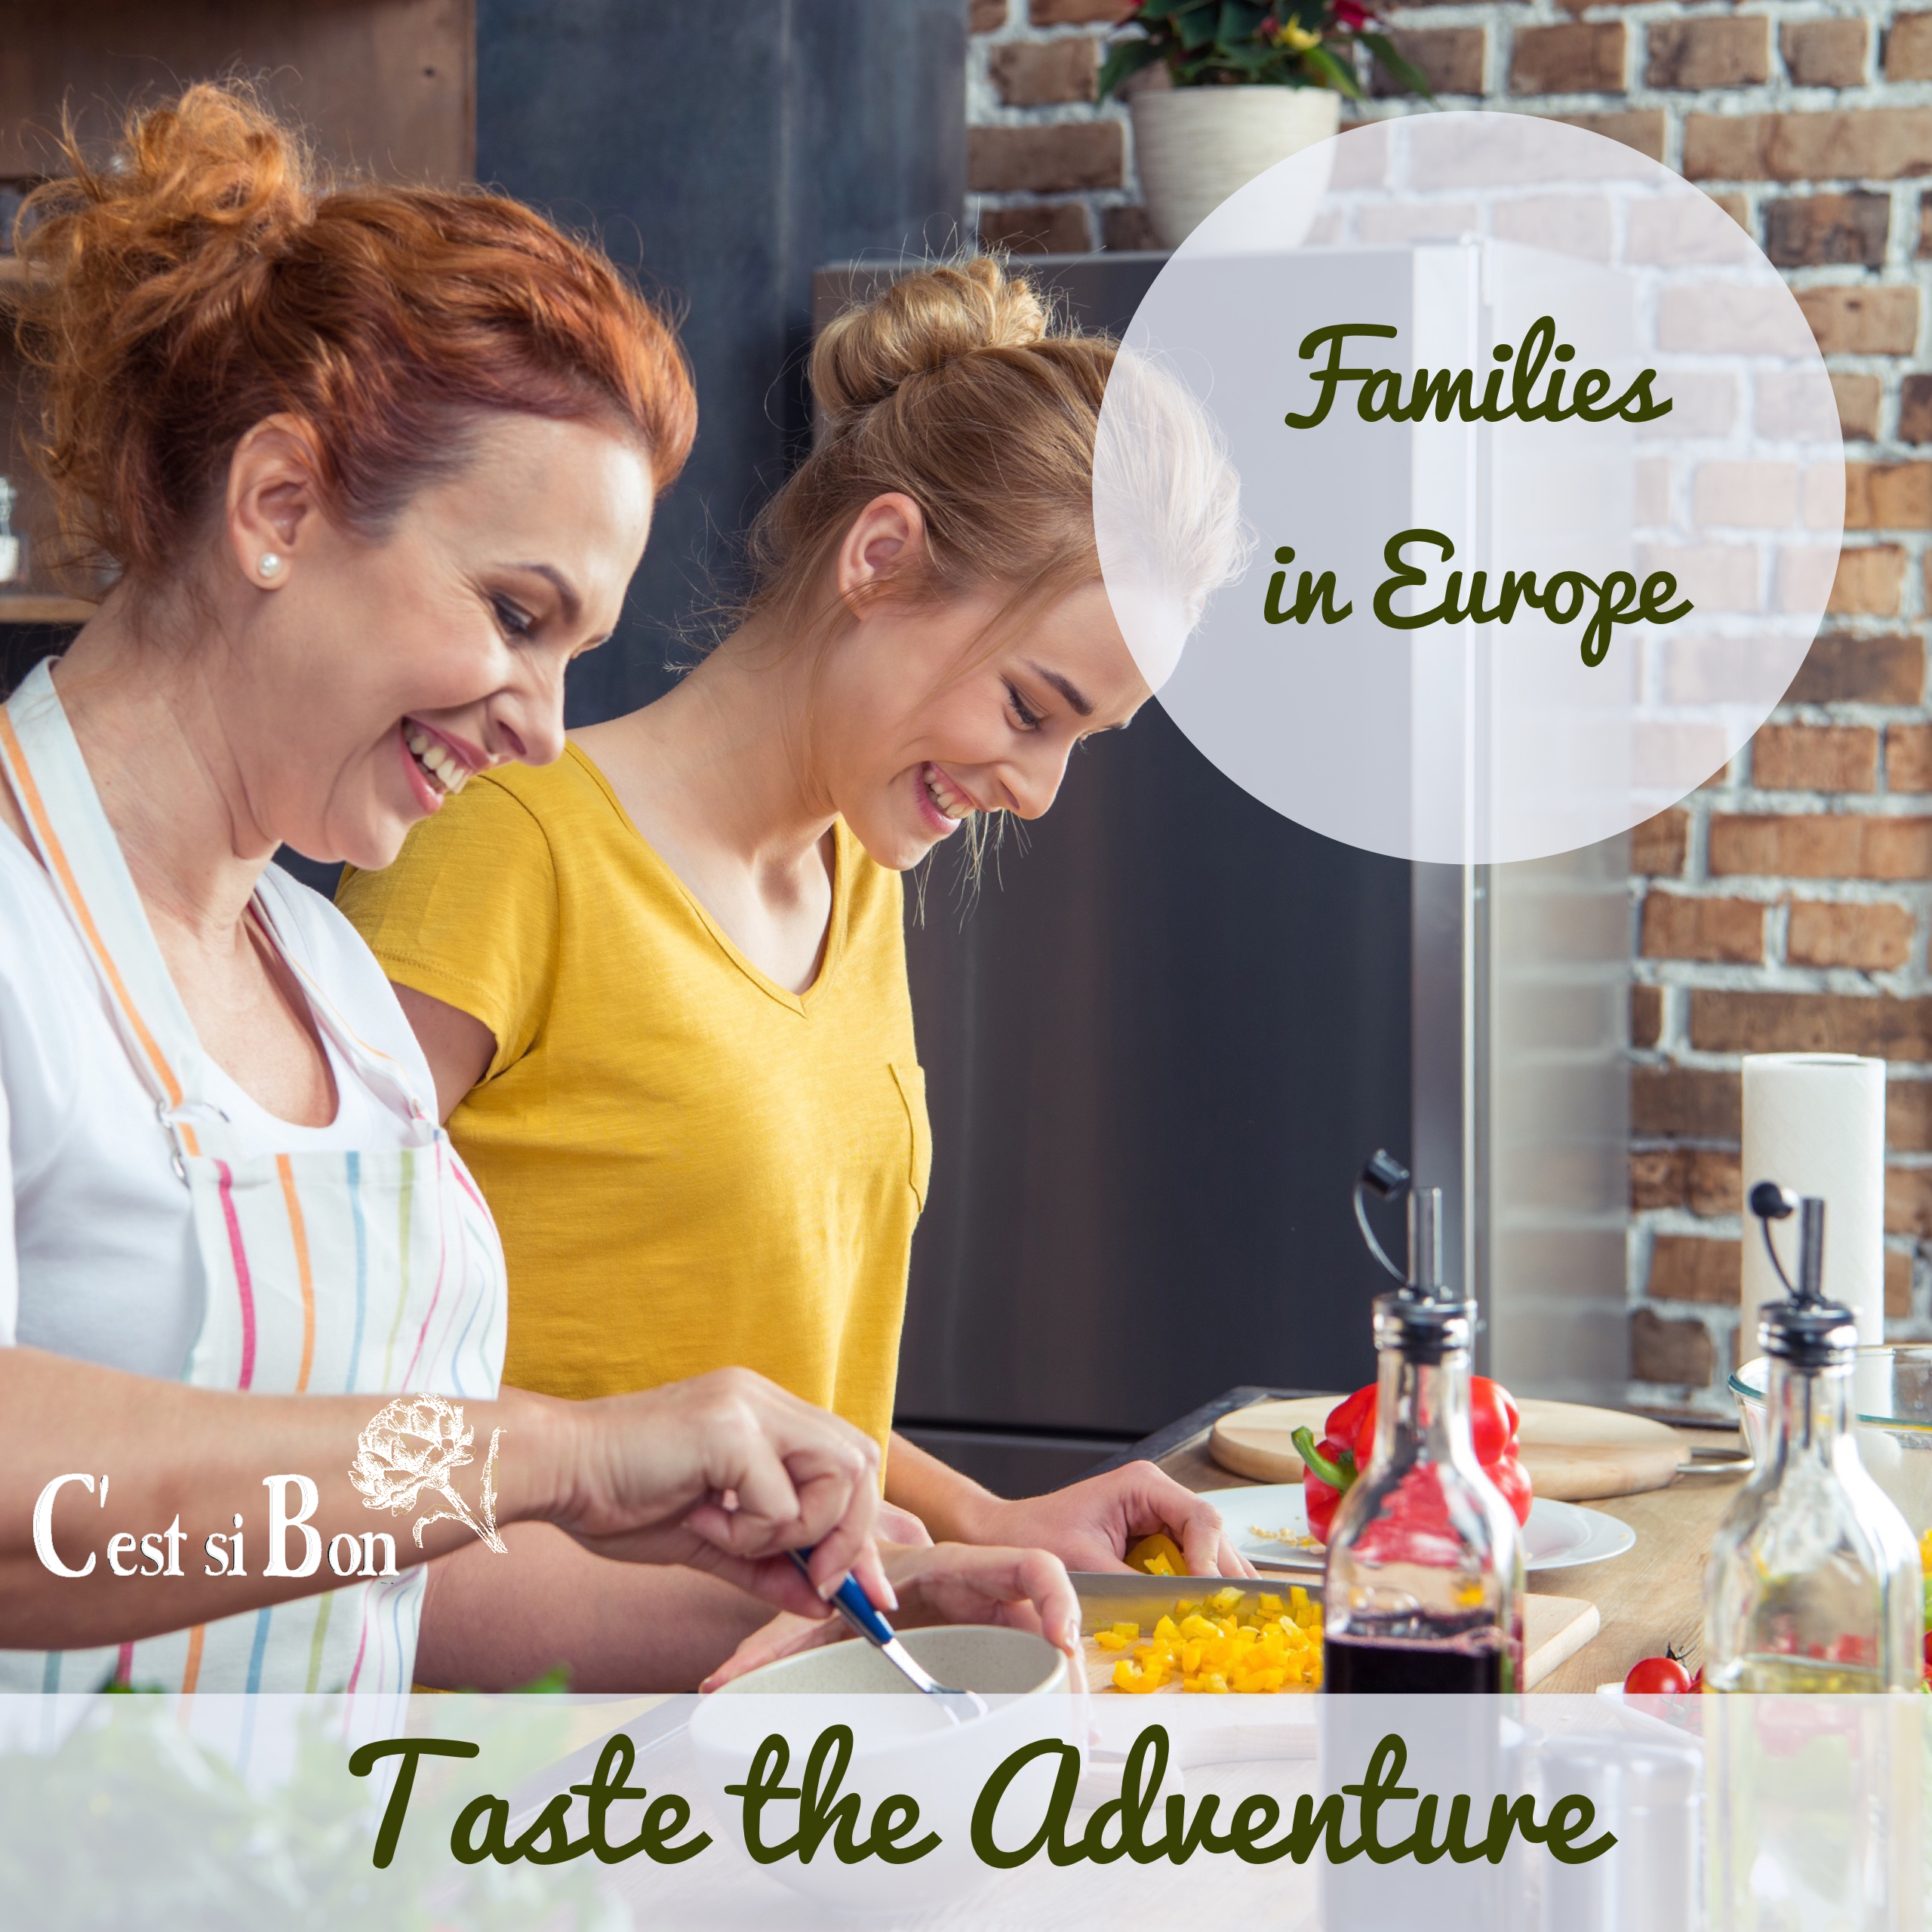 Families in Europe with Taste the Adventure